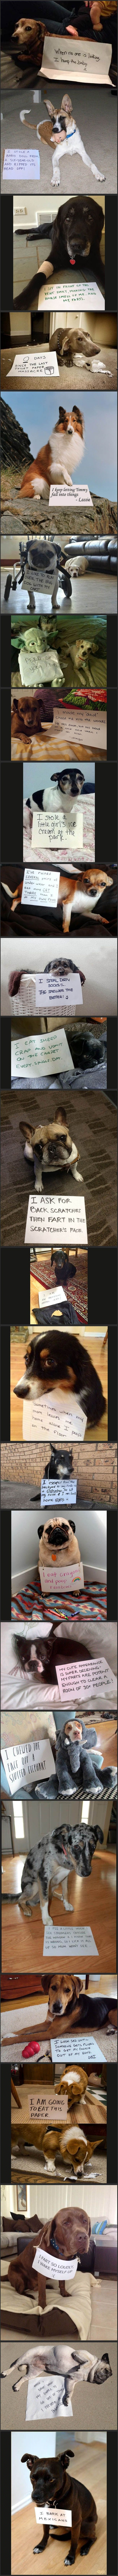 Funny dogs~hilarious